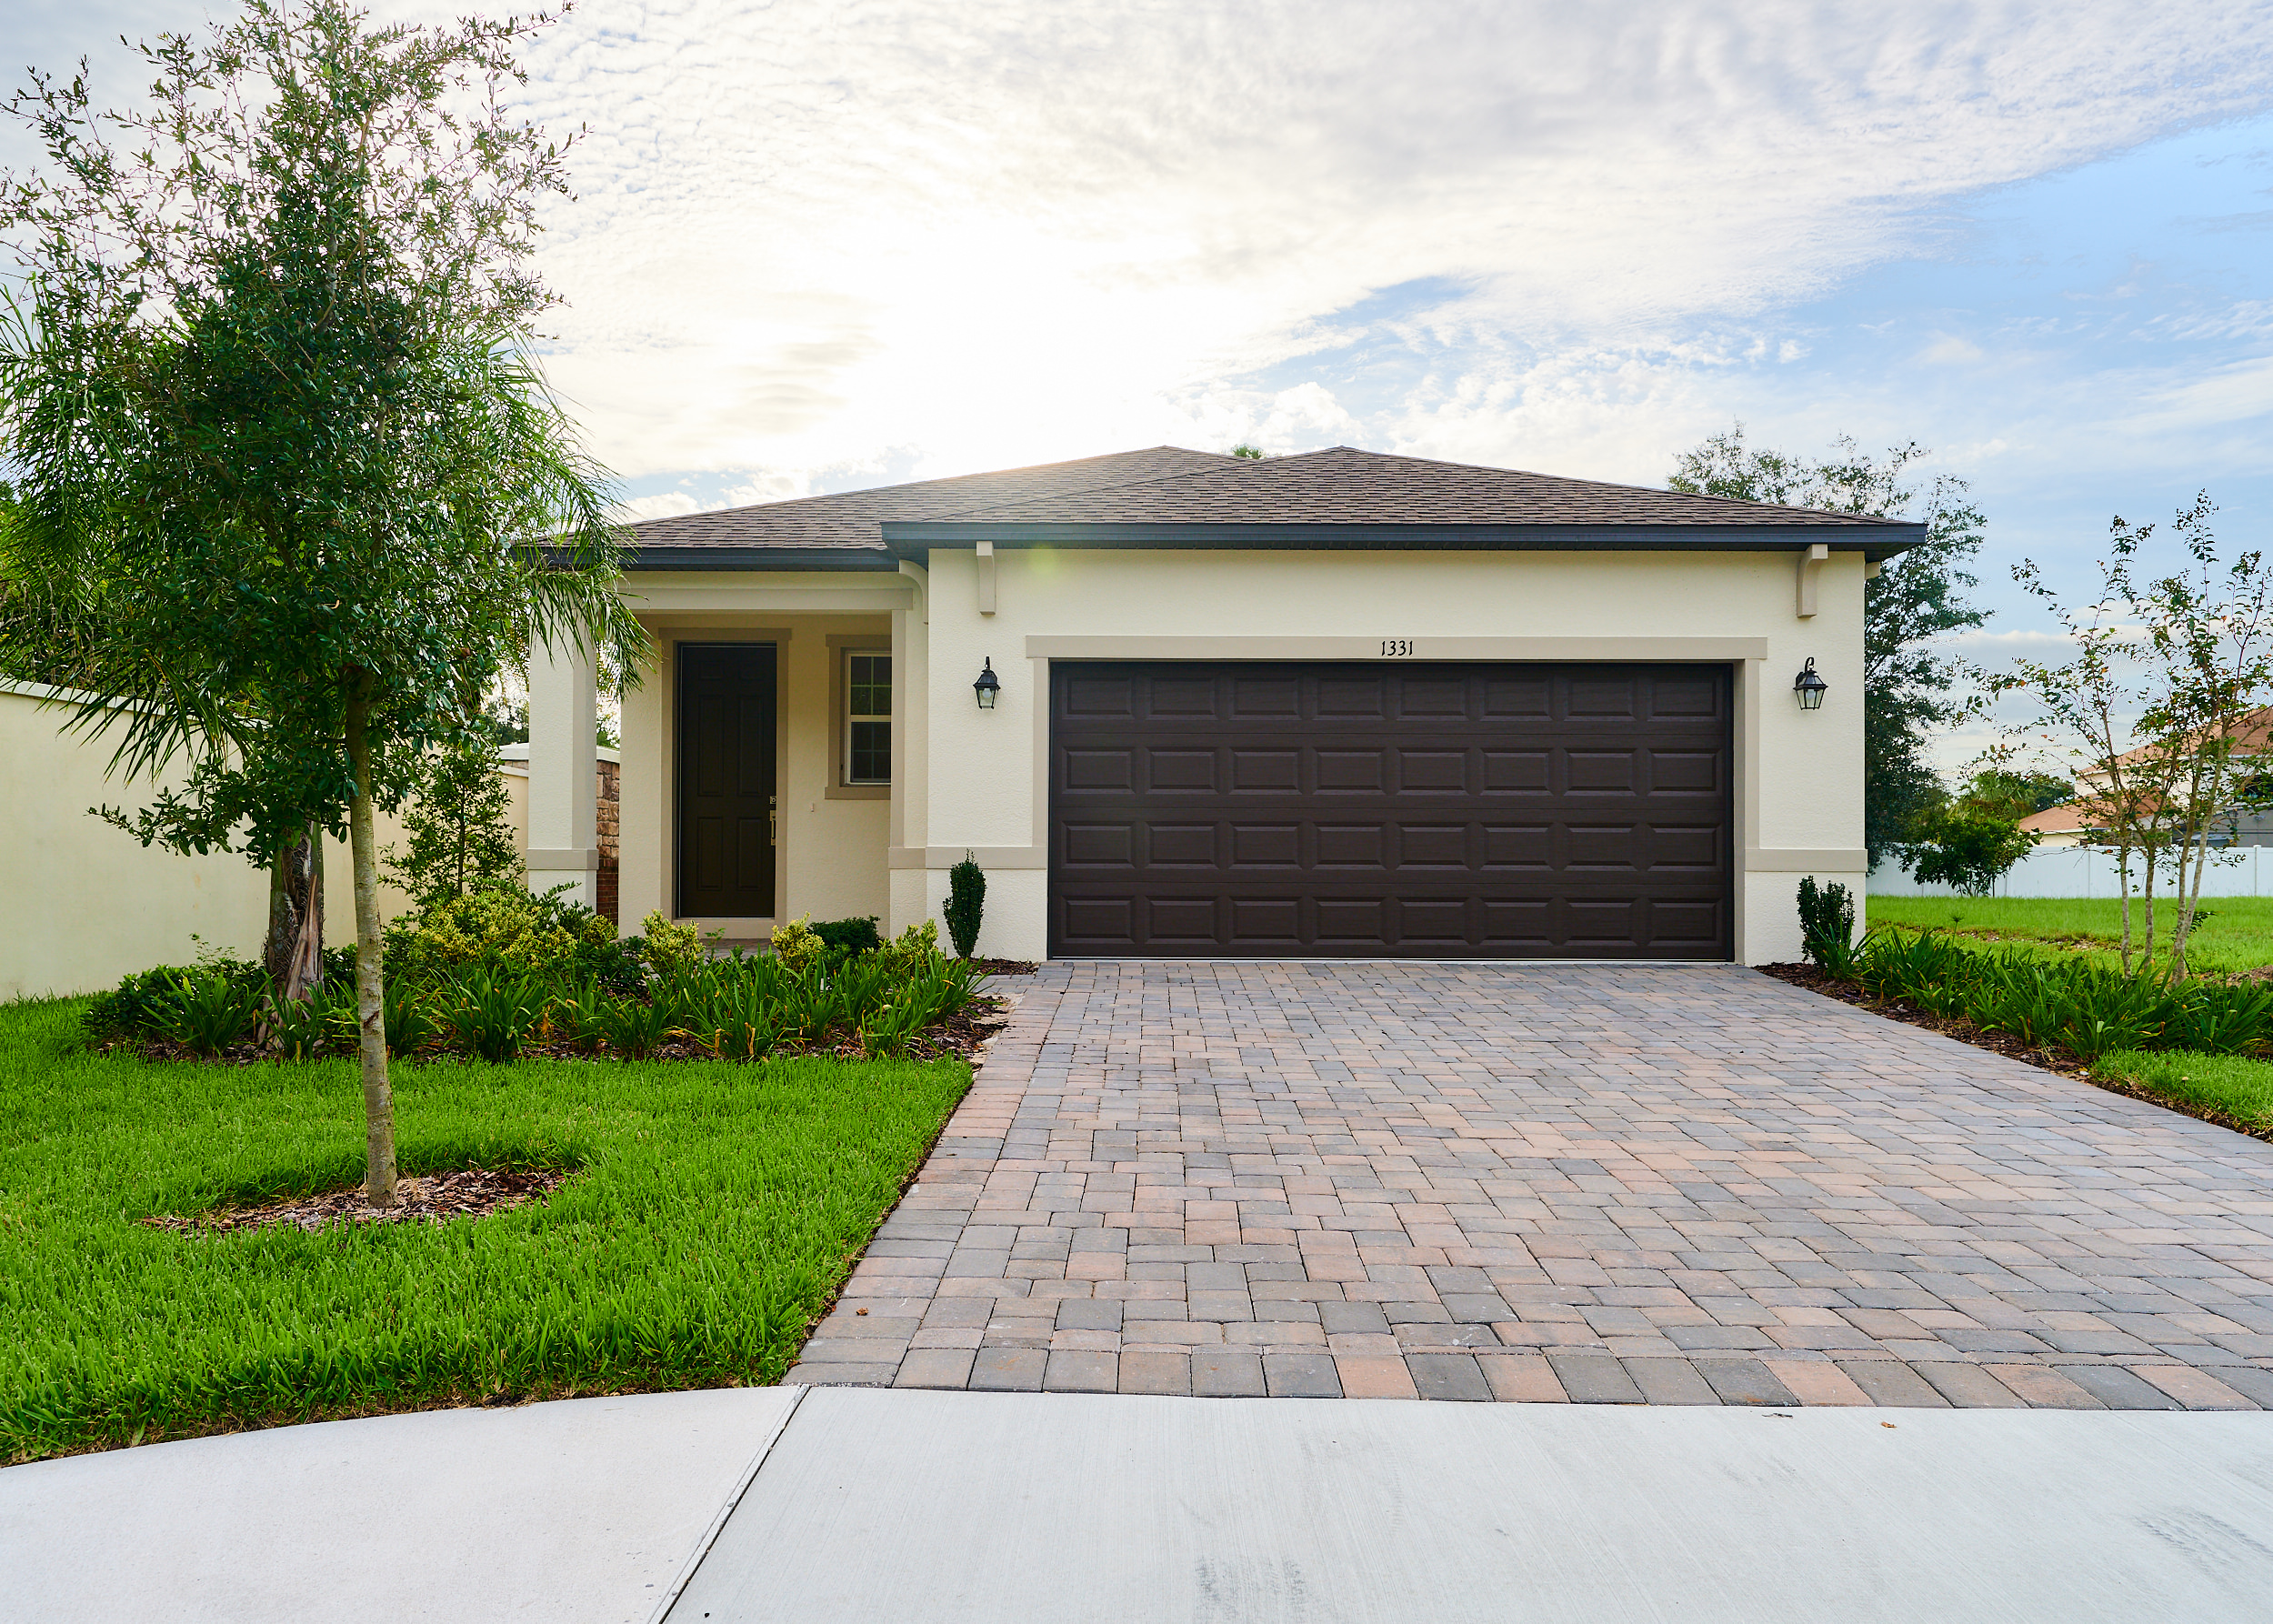 1331 Arisha Home With Garage | Modern Home Architectures in Orlando, FL